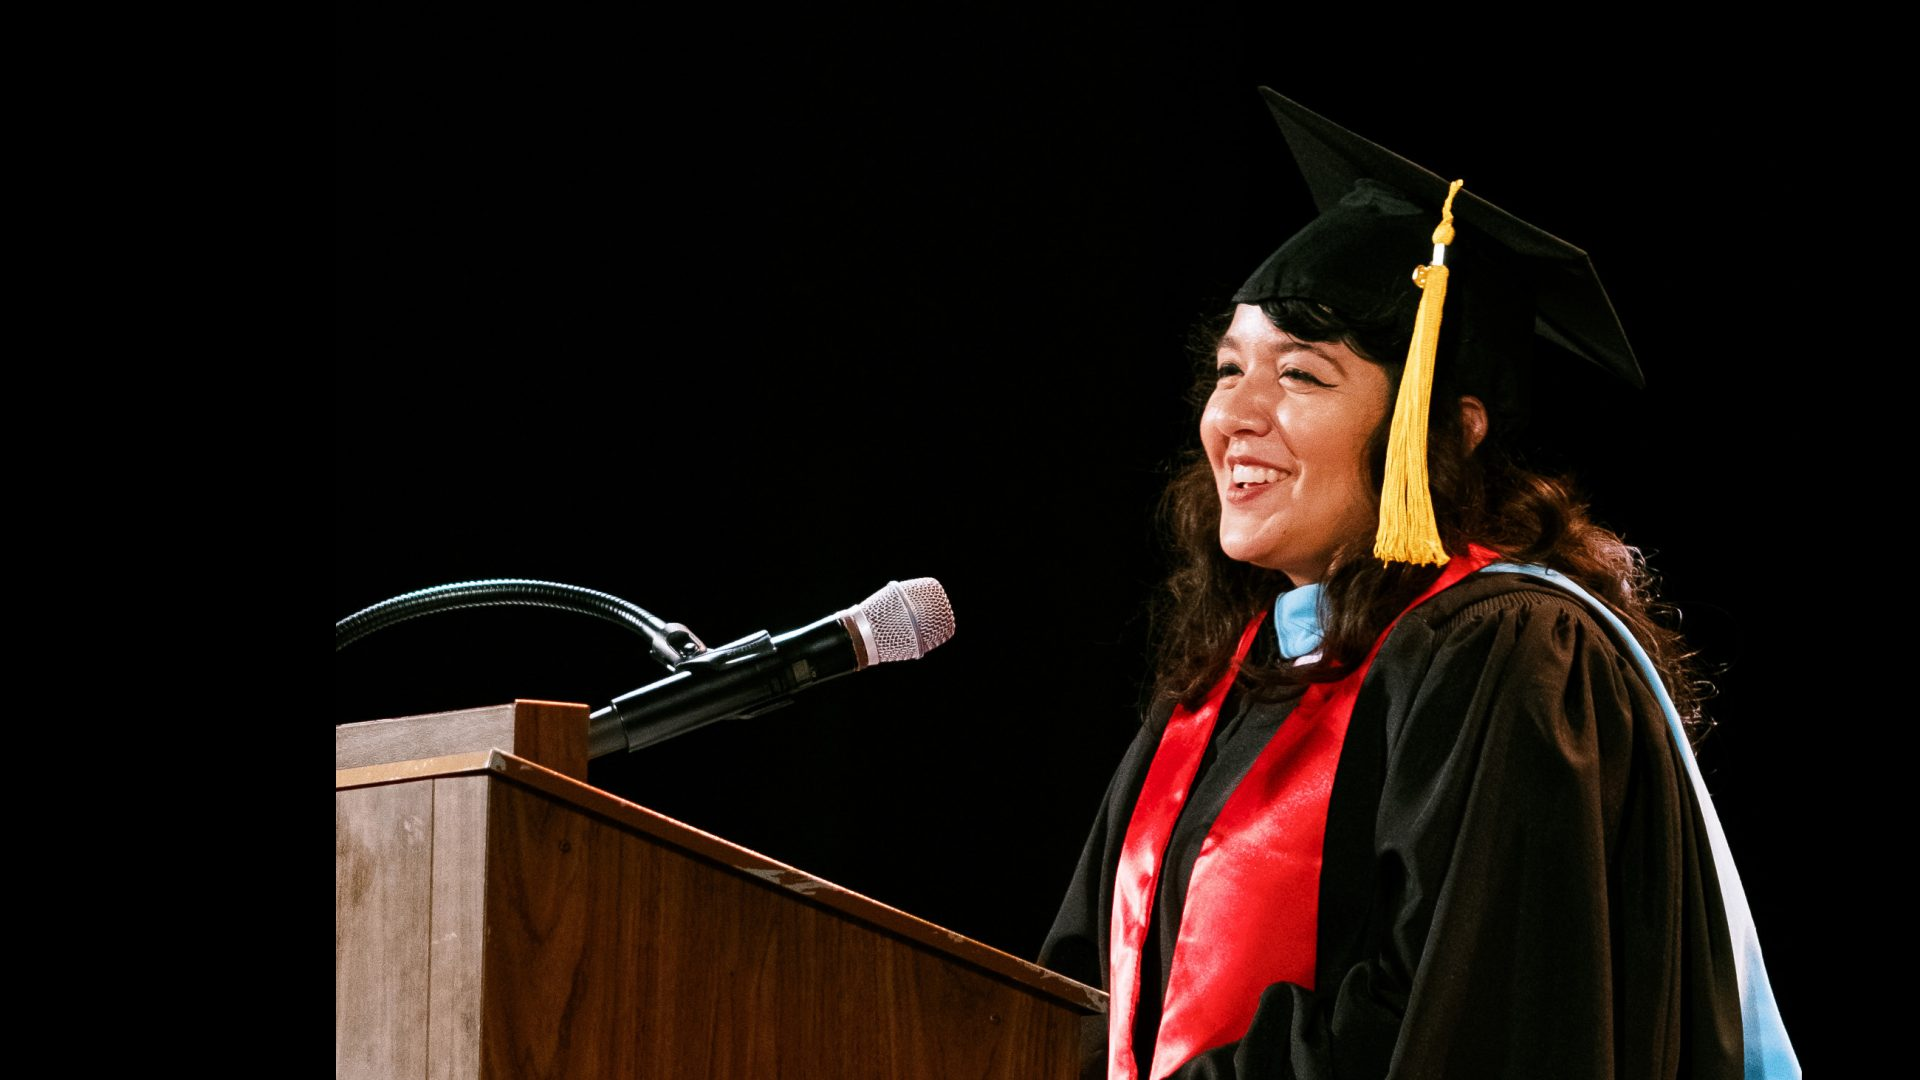 Cynthia Perez Beltethon '14 (Hunter) addresses the Class of 2019 at Commencement.